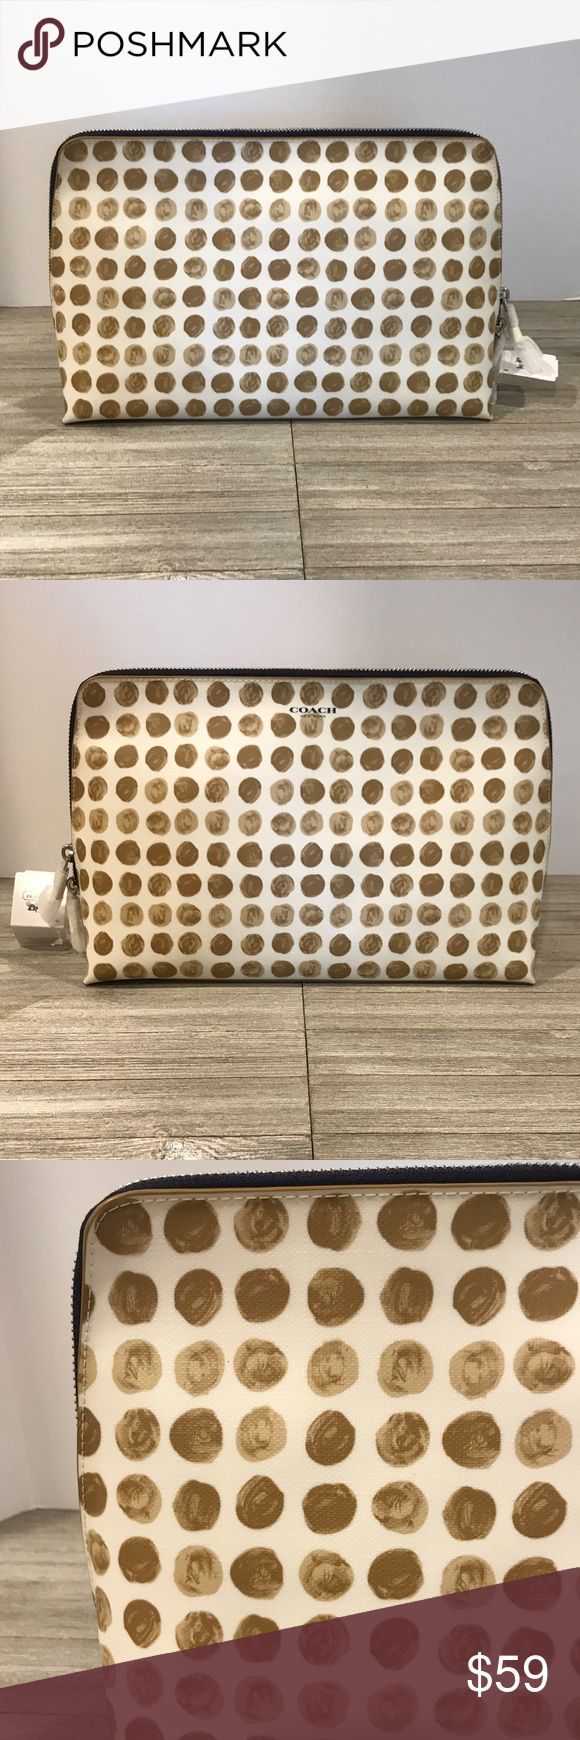 """Coach Large Cosmetic Bag Brand New With Tags....Coach """"Dots"""" large cosmetic bag. Color exterior: Cream w/ different color brown/tan dots. Color interior: Tan. Zipper and hardware is the silver color. Coach Bags Cosmetic Bags & Cases"""